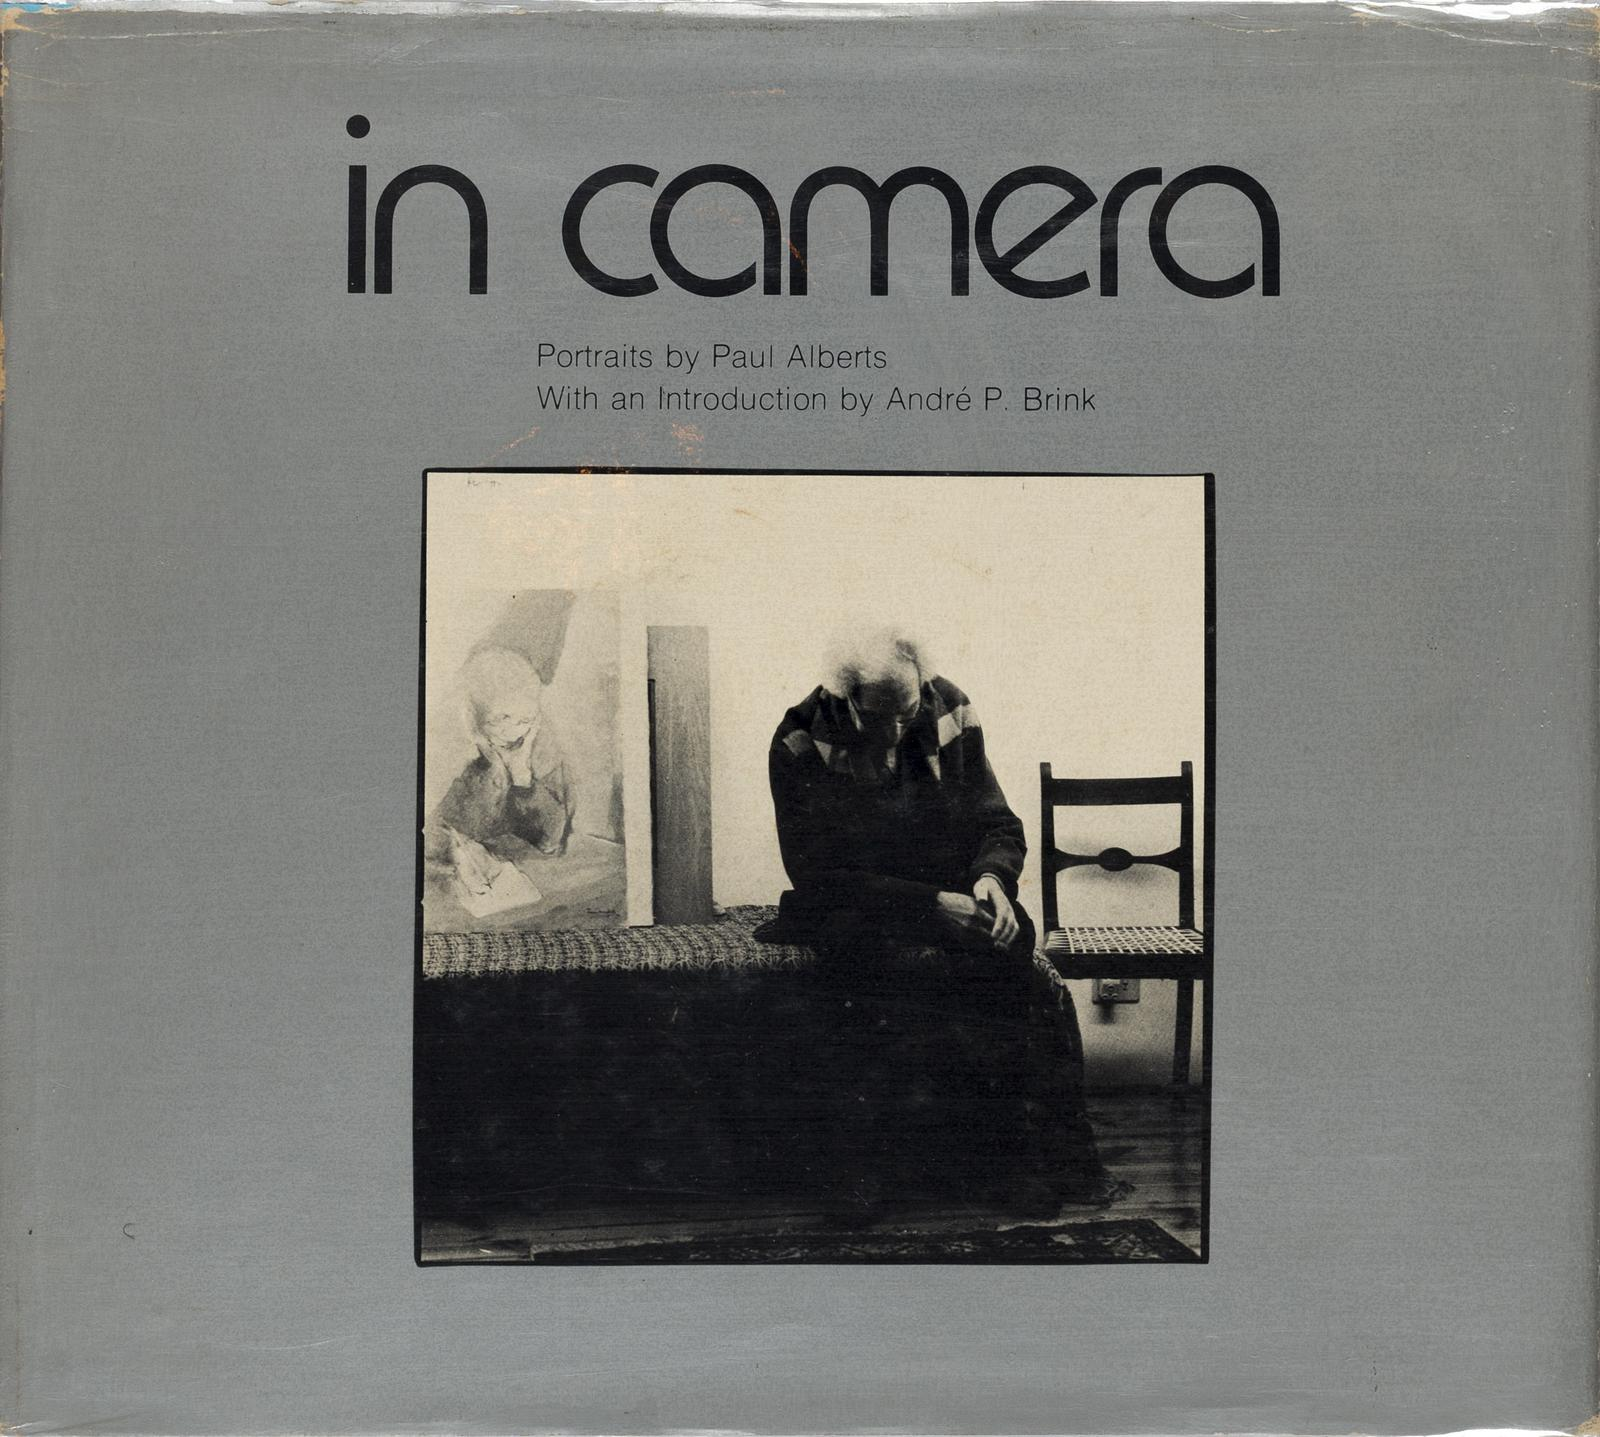 In Camera: Portraits of South African Artists (1979)